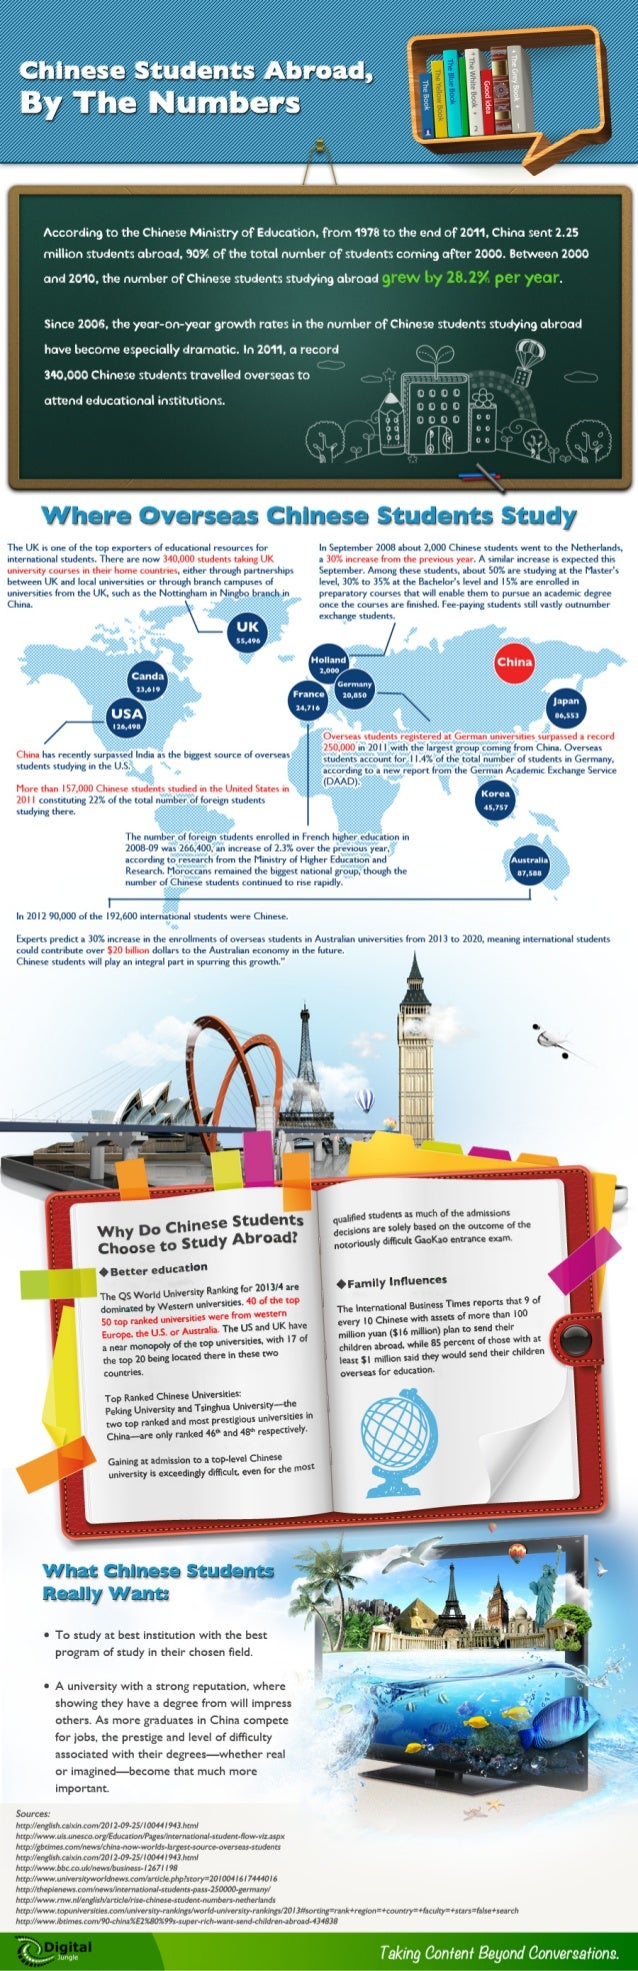 Why Chinese Students Go Abroad for Higher Education - Infographic